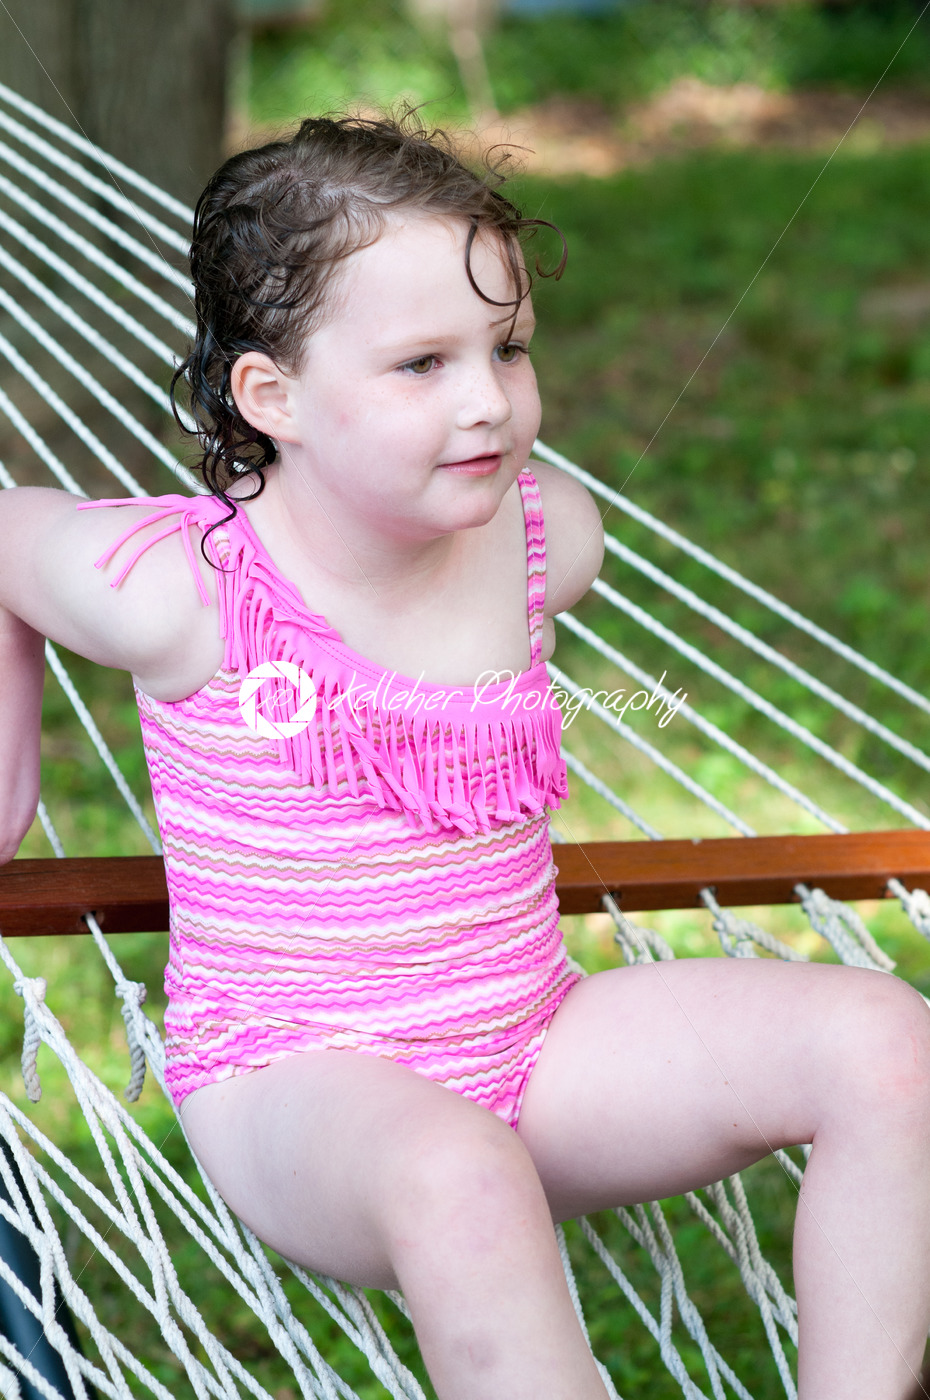 Young girl outside in swimming suit sitting on hammock - Kelleher Photography Store